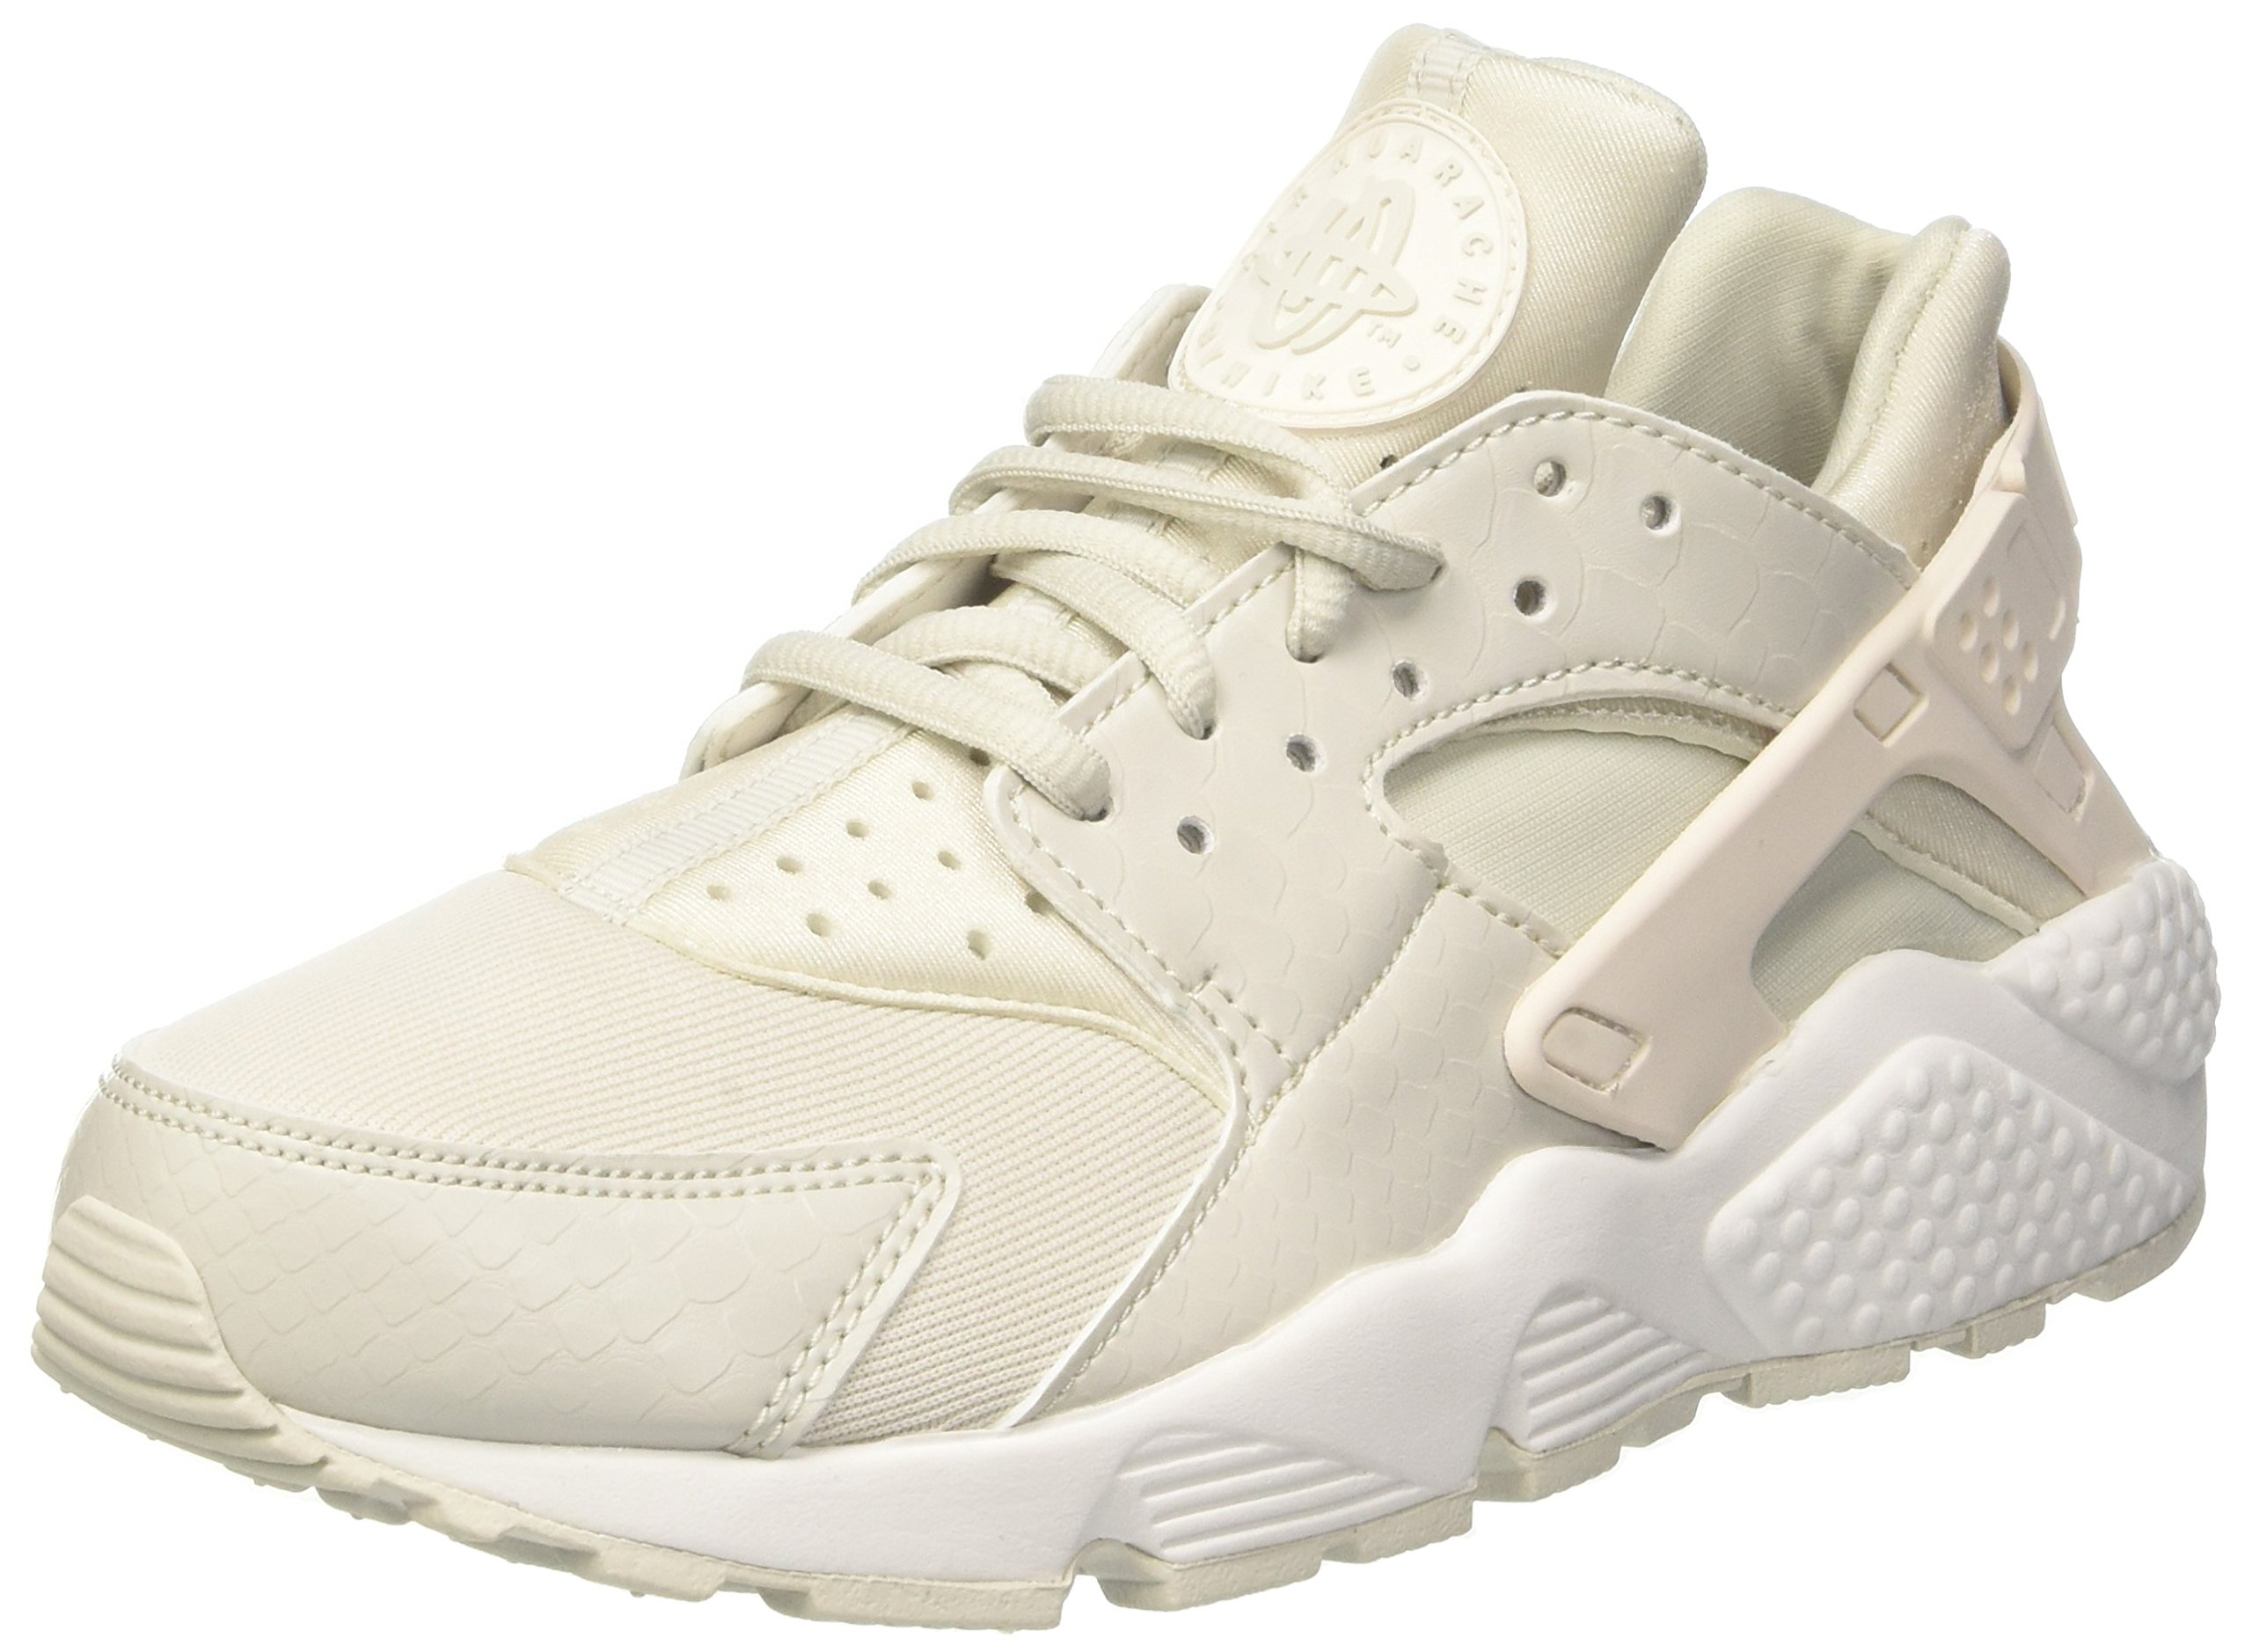 588914914 Galleon - Nike Women s Air Huarache Run Low-Top Sneakers